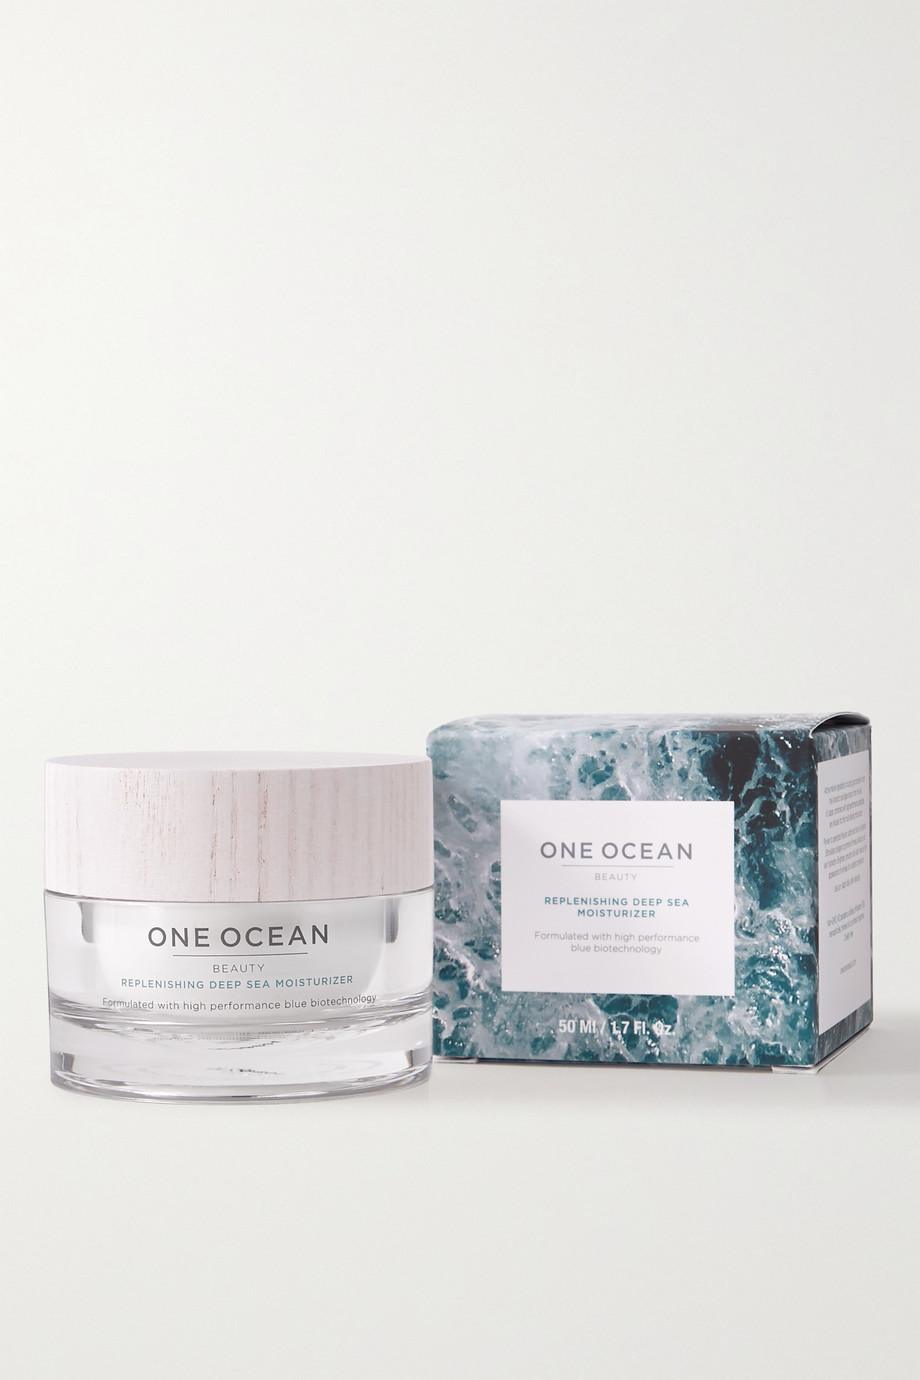 One Ocean Beauty Replenishing Deep Sea Moisturizer, 50 ml – Feuchtigkeitscreme